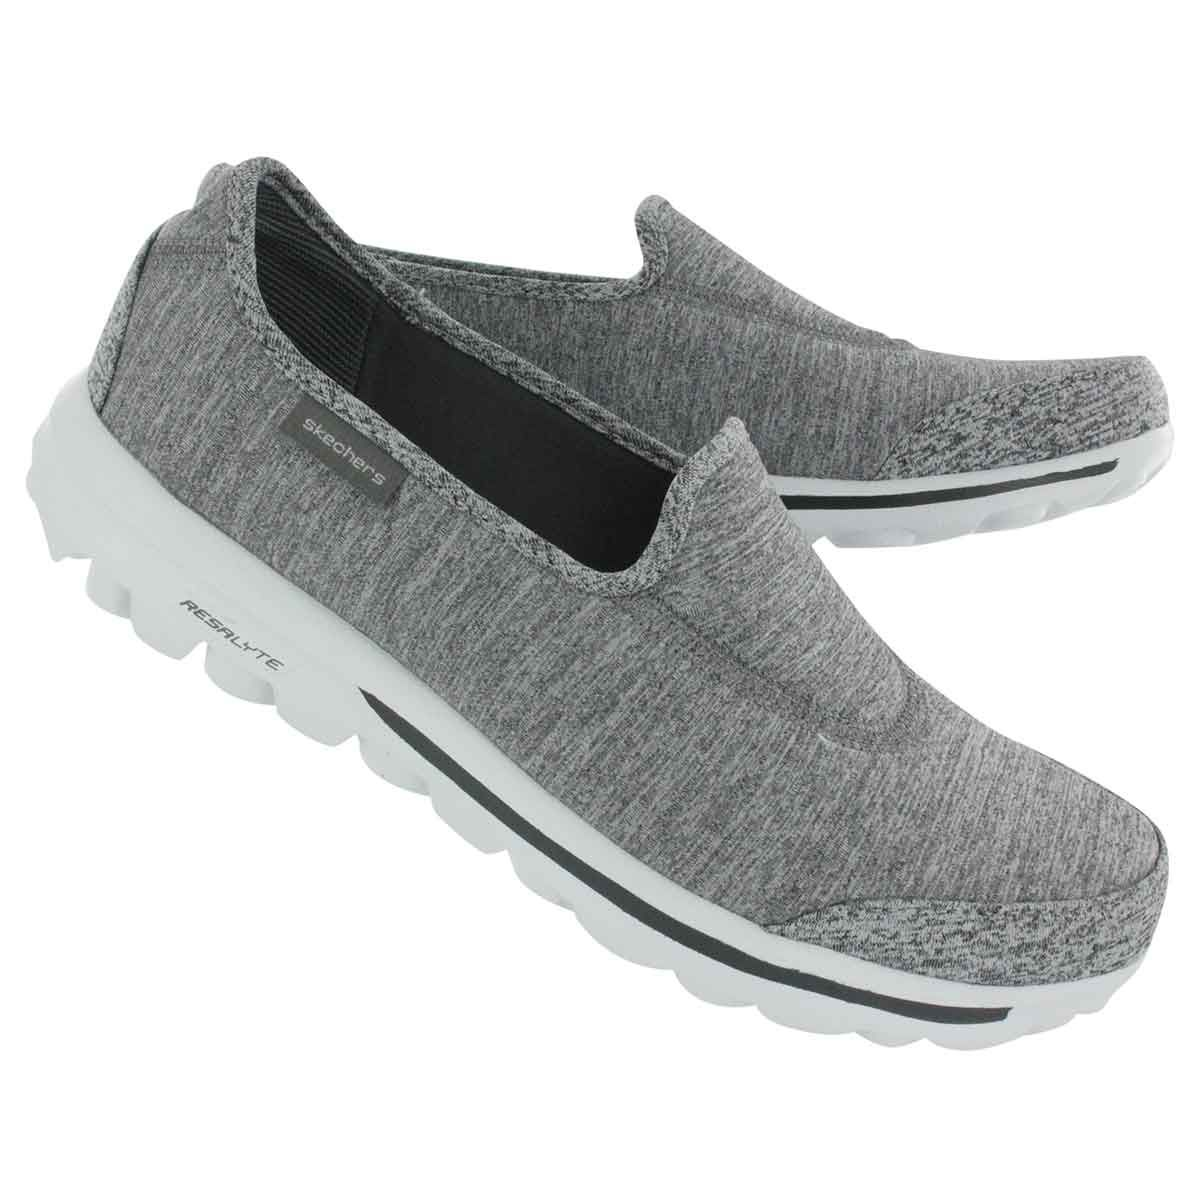 01a310bc641 Skechers Women s GOwalk INTERVAL grey slip ons 13585 gry I think that these  would be great dog walking shoes! Easy on